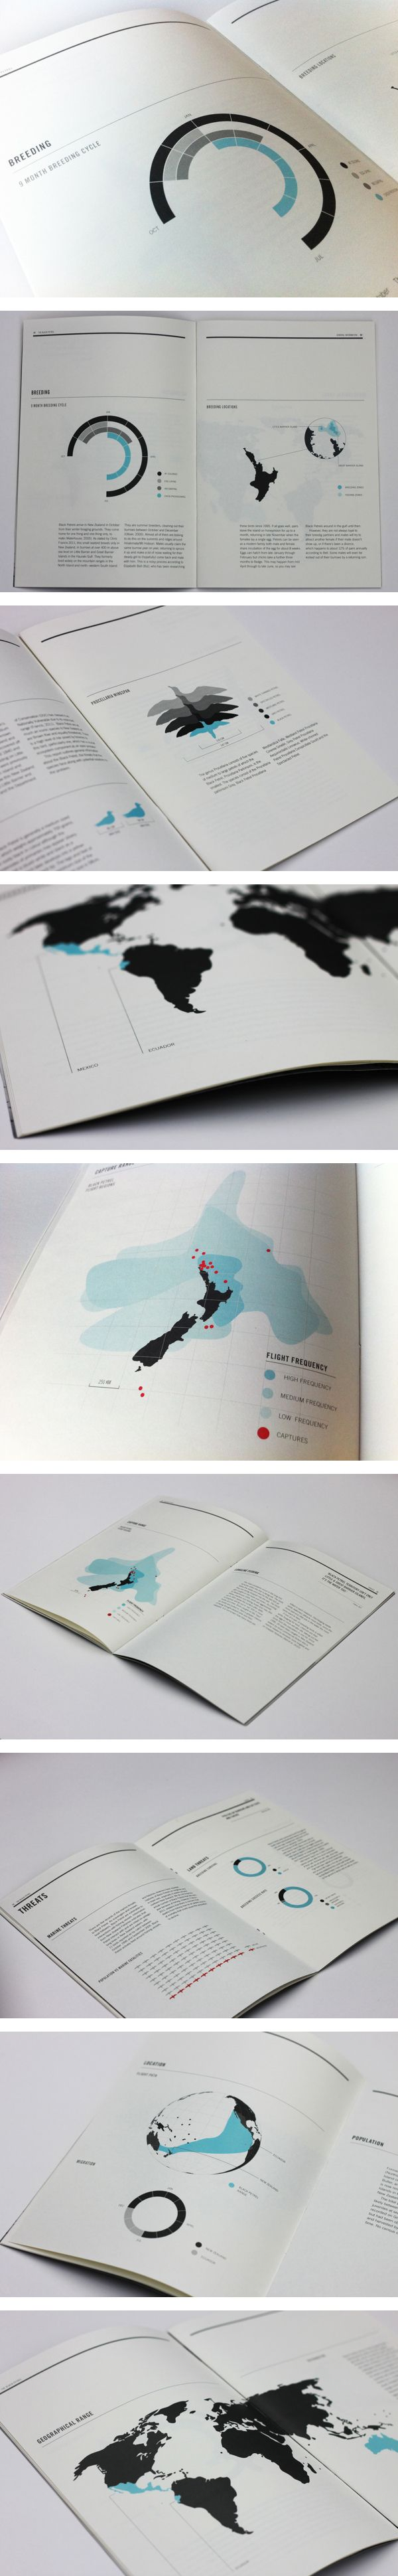 lauren earl | conservation report 2012 #Branding #Identity #informationdesign